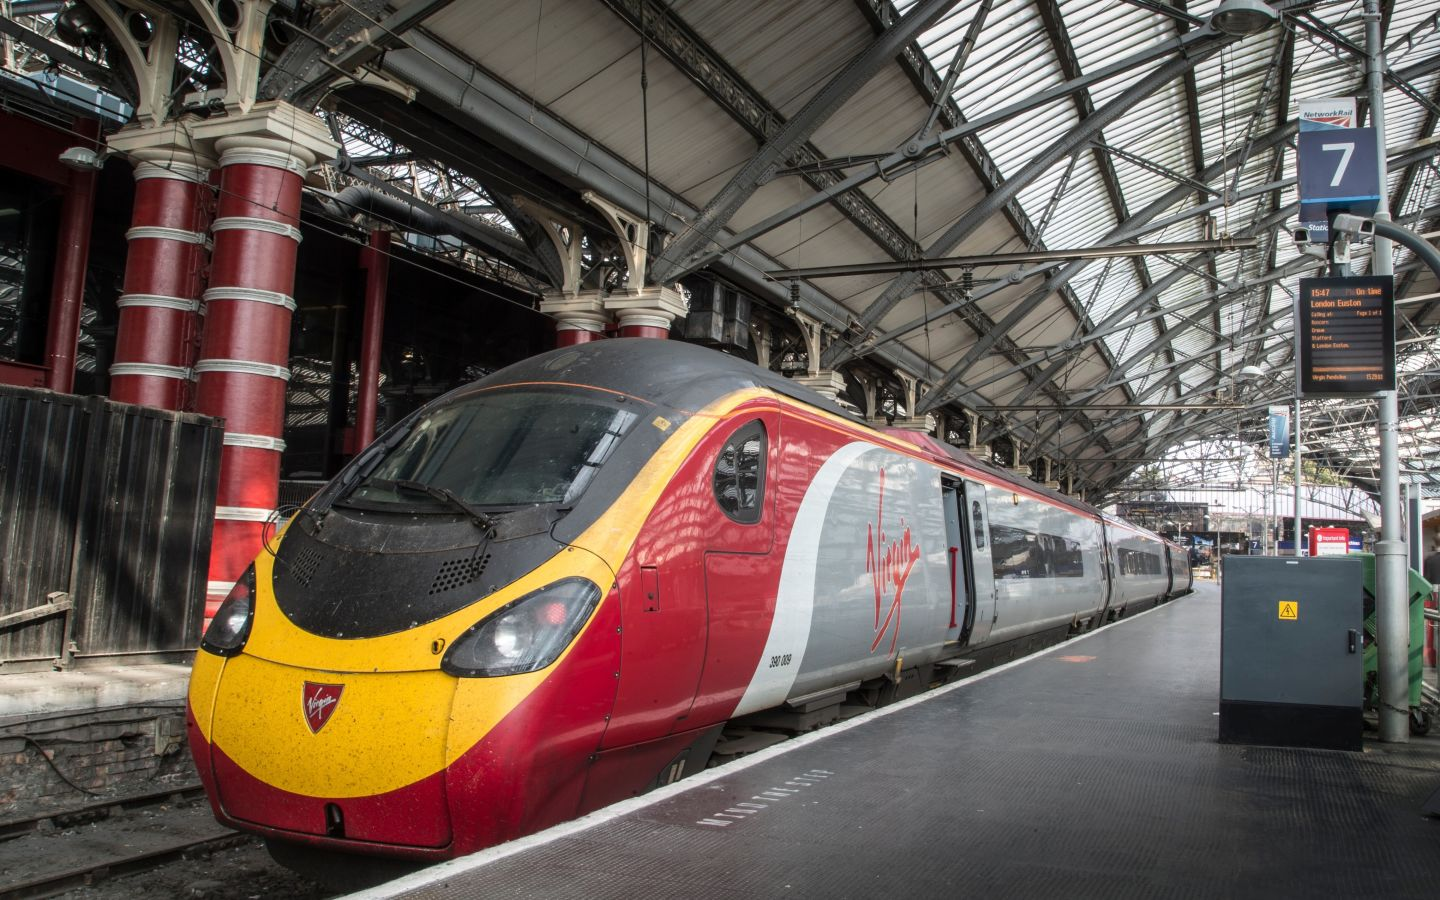 A Virgin Trains Pendolino at Liverpool Lime Street station